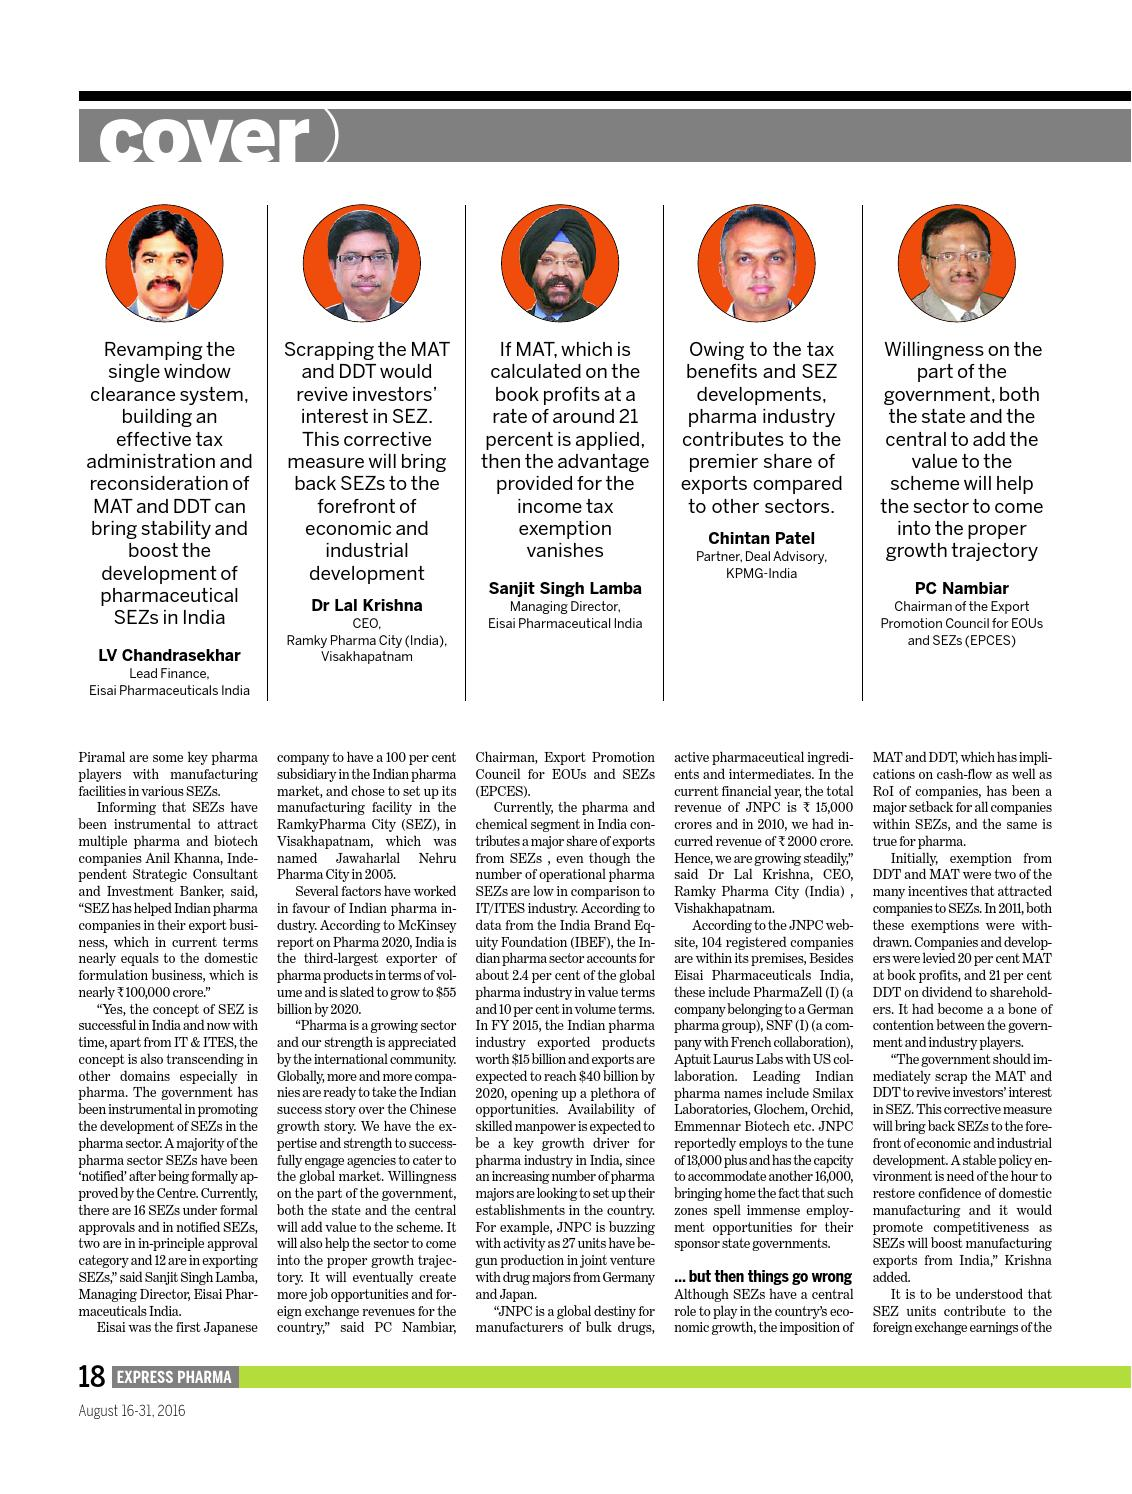 Express Pharma (Vol 11, No 20) August 16-31, 2016 by Indian Express